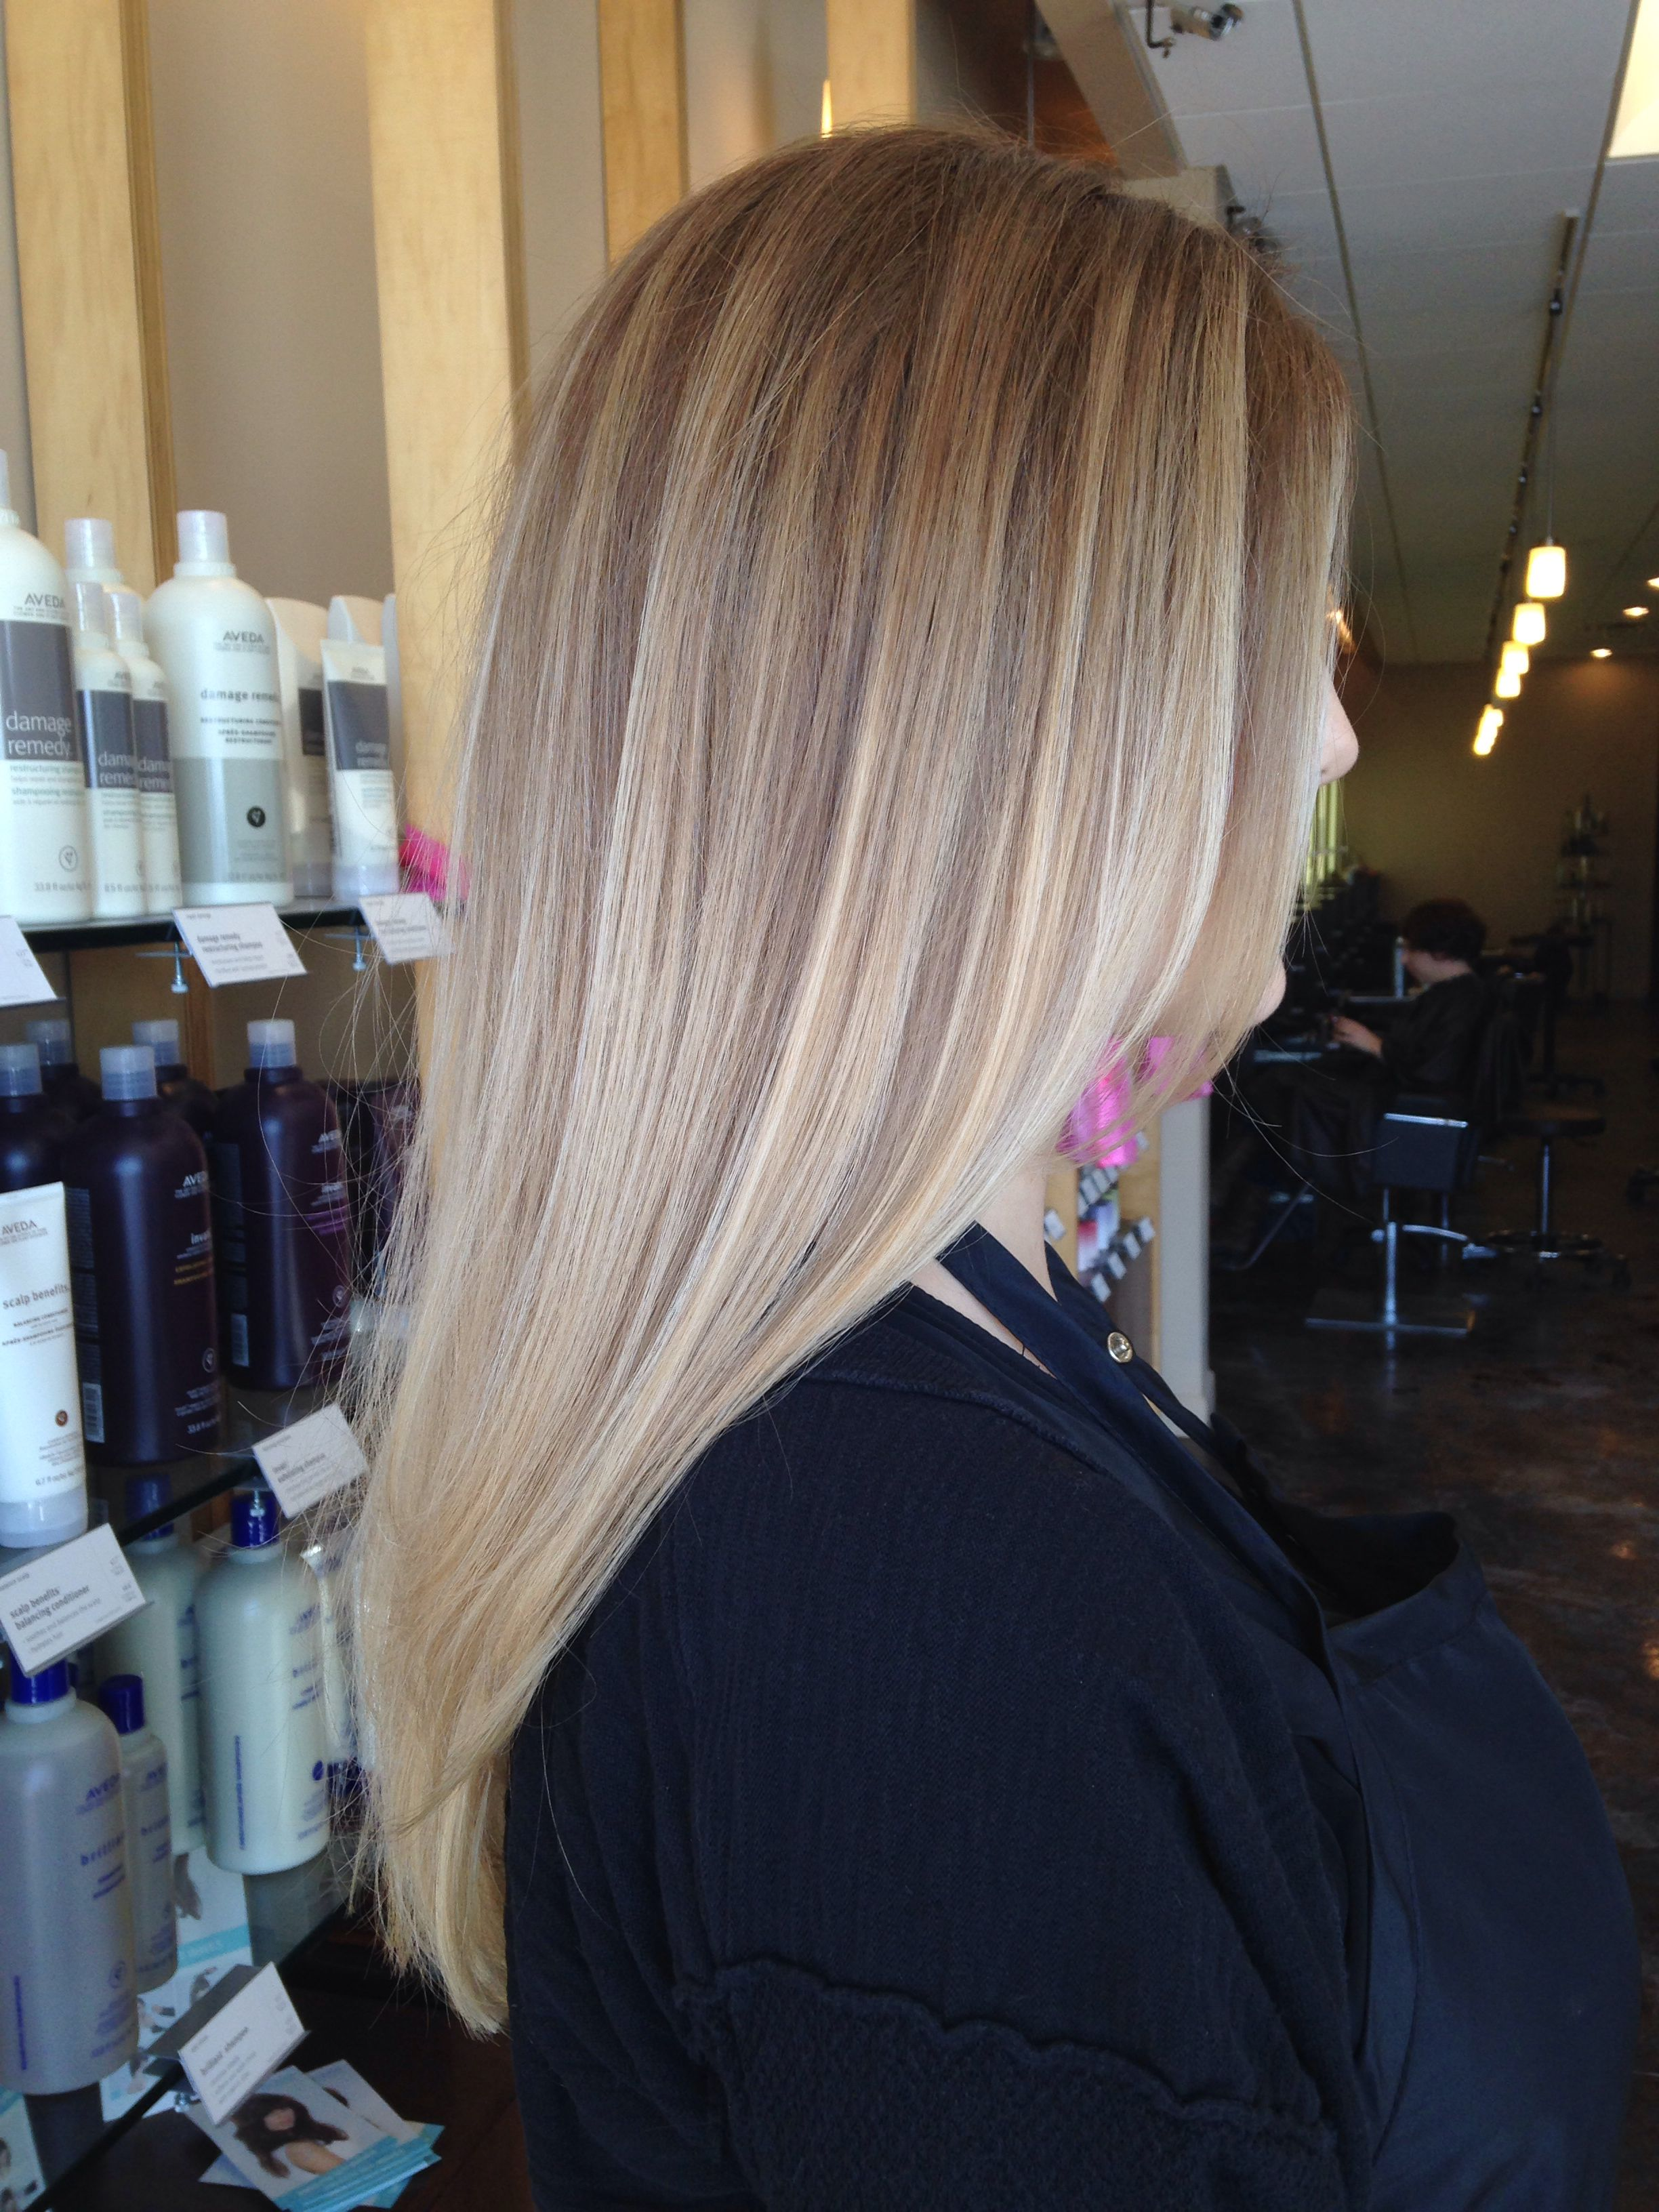 A Cool Toned Color Melted Ombr By Aveda Full Spectrum Permanent